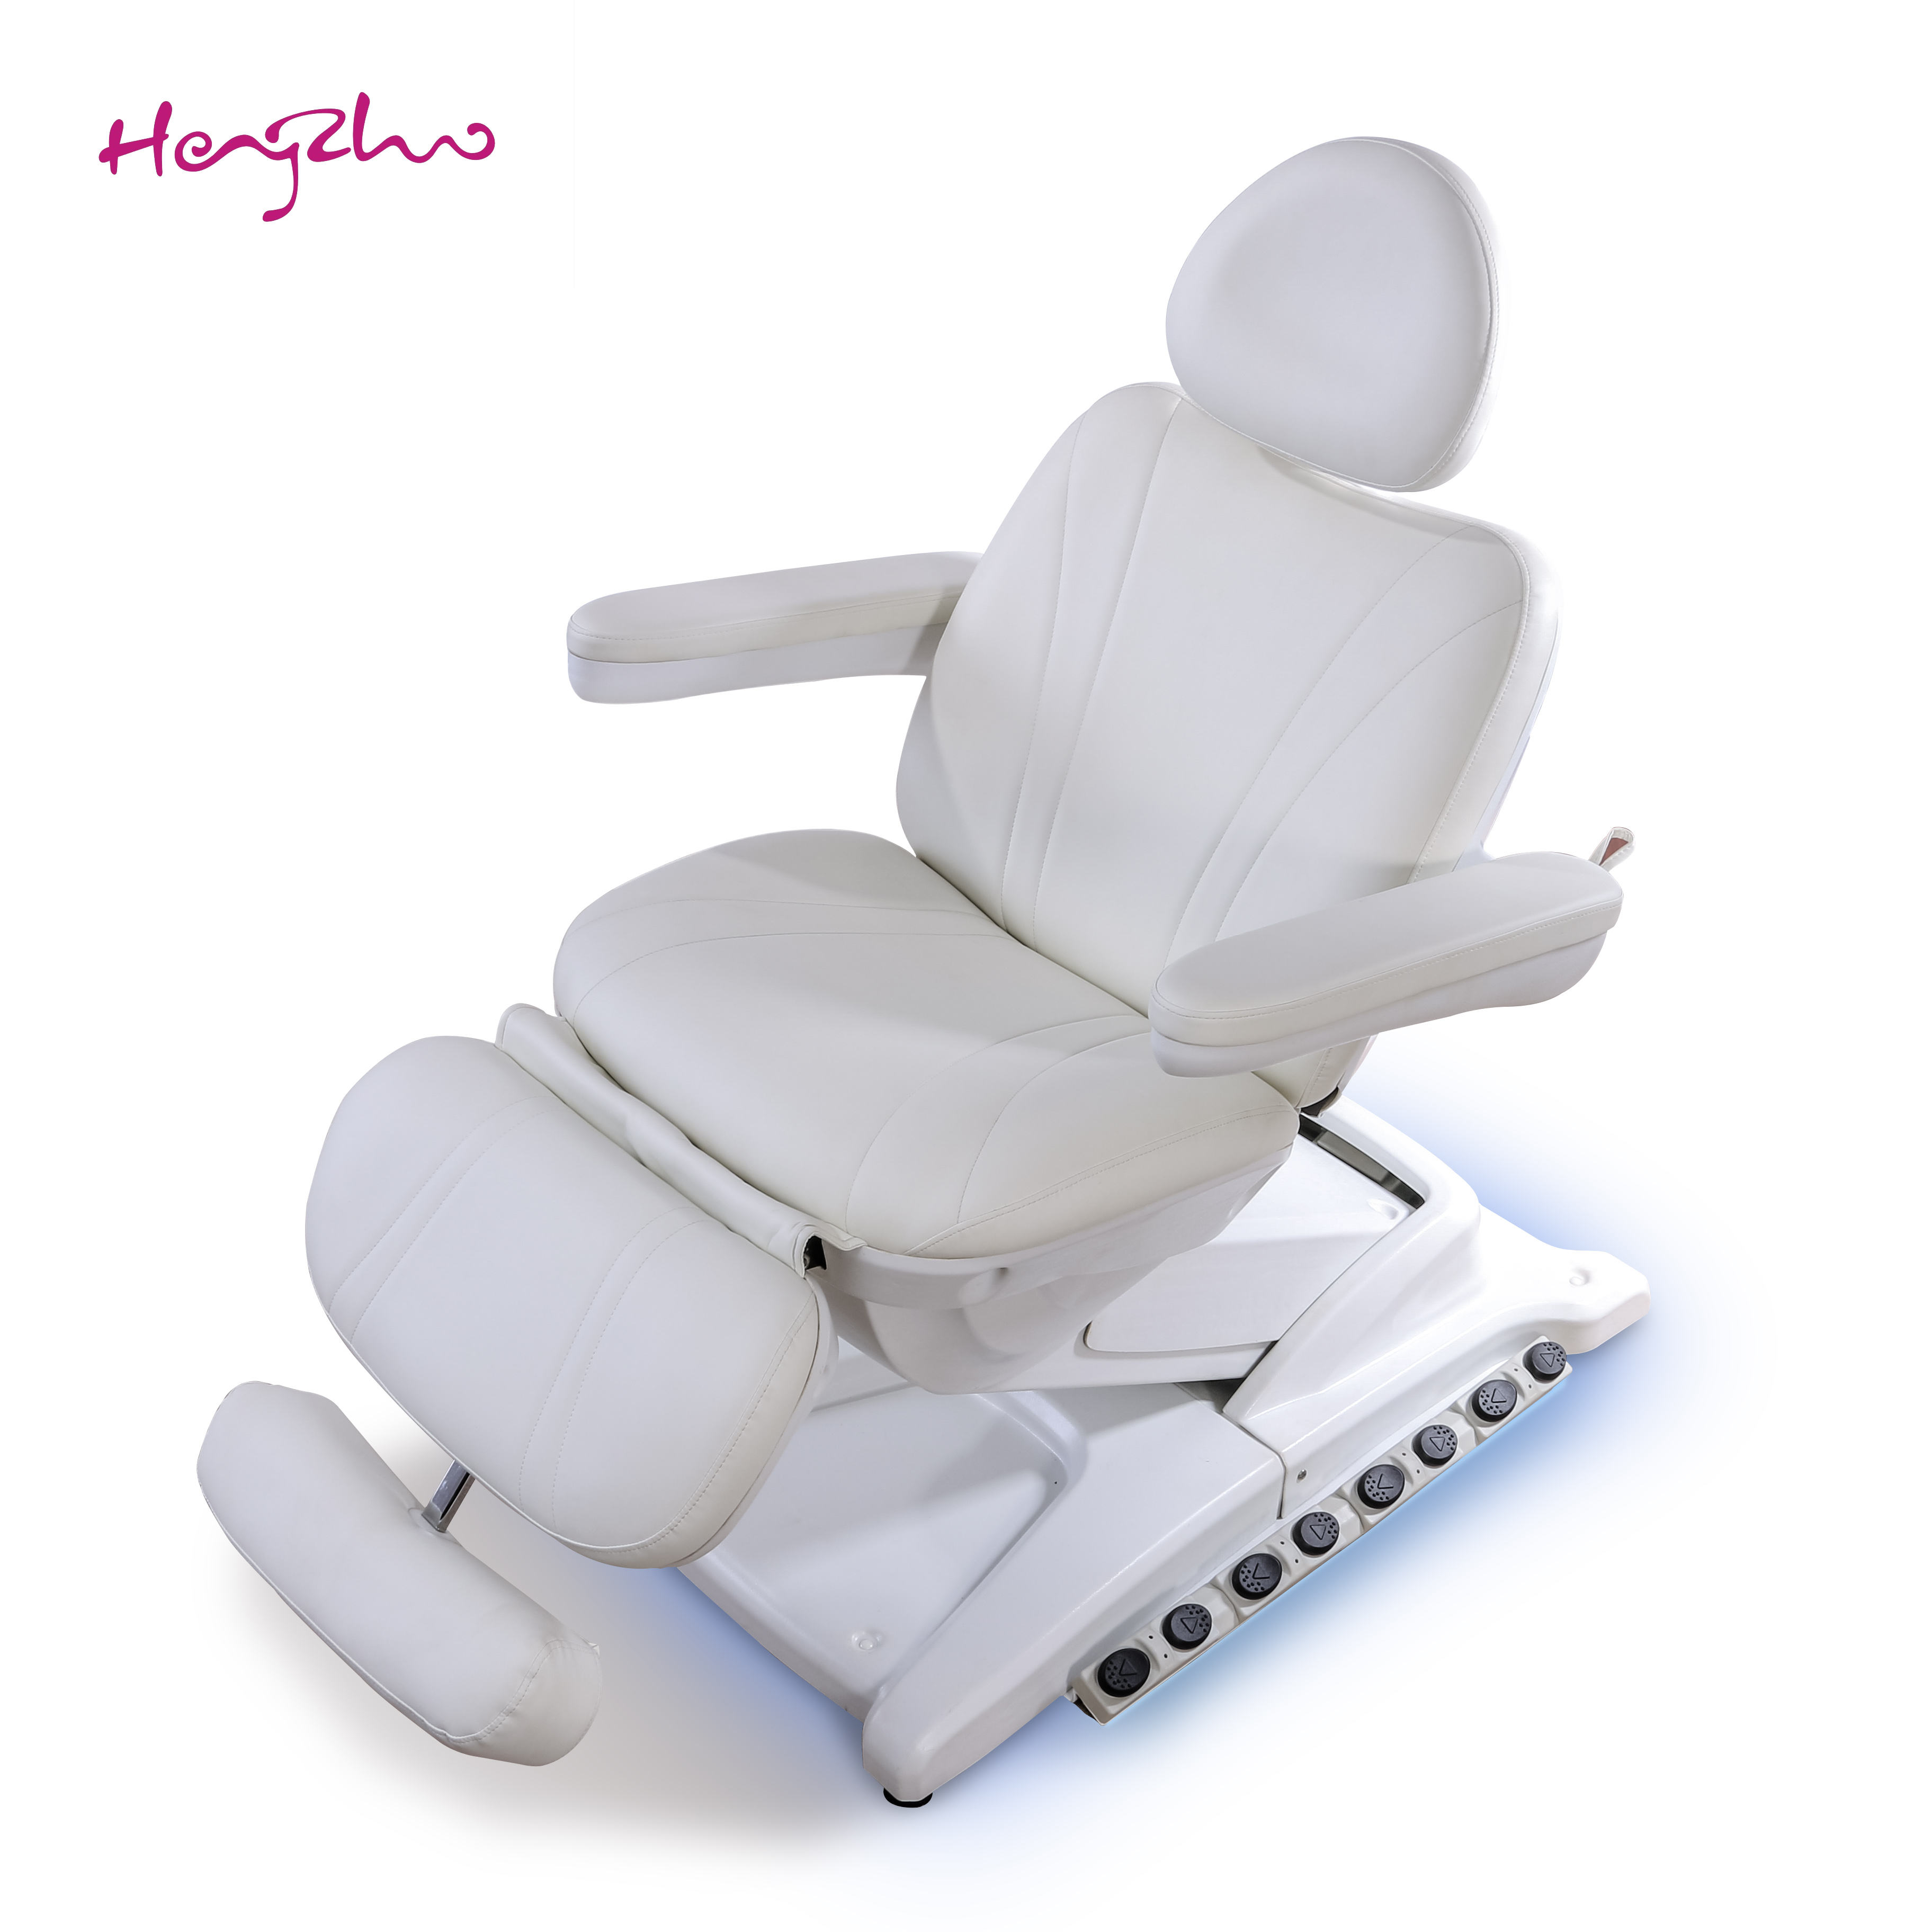 Luxury Full Functional Electric Beauty bed Dermatology Beauty Treatment Chair for Salon